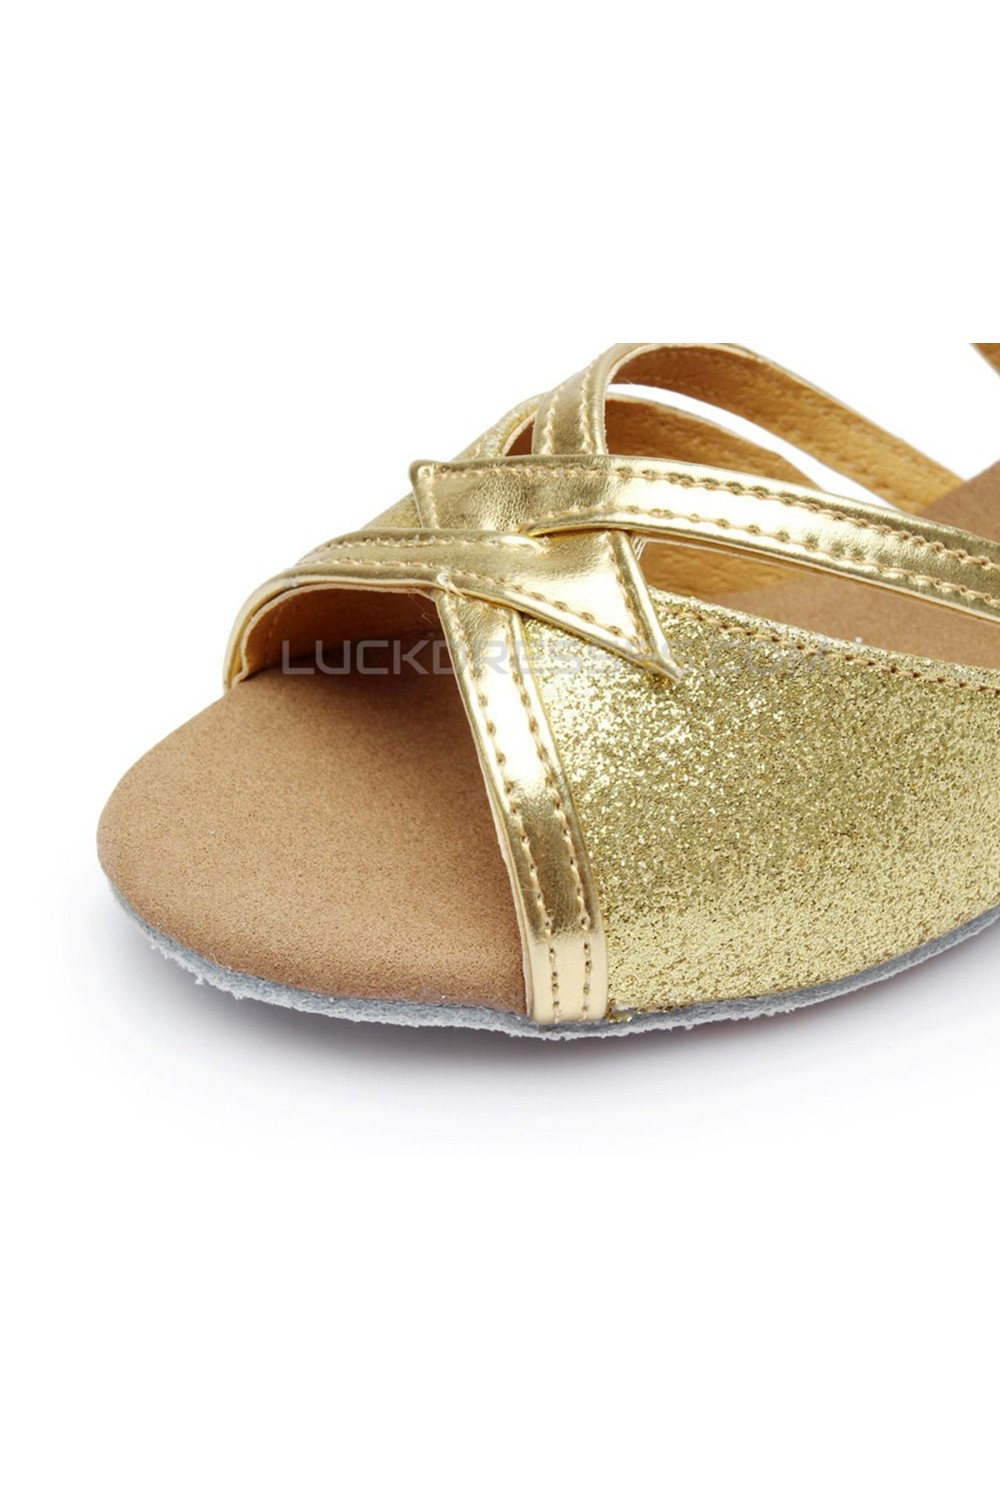 Free shipping BOTH ways on gold glitter shoes kids, from our vast selection of styles. Fast delivery, and 24/7/ real-person service with a smile. Click or call